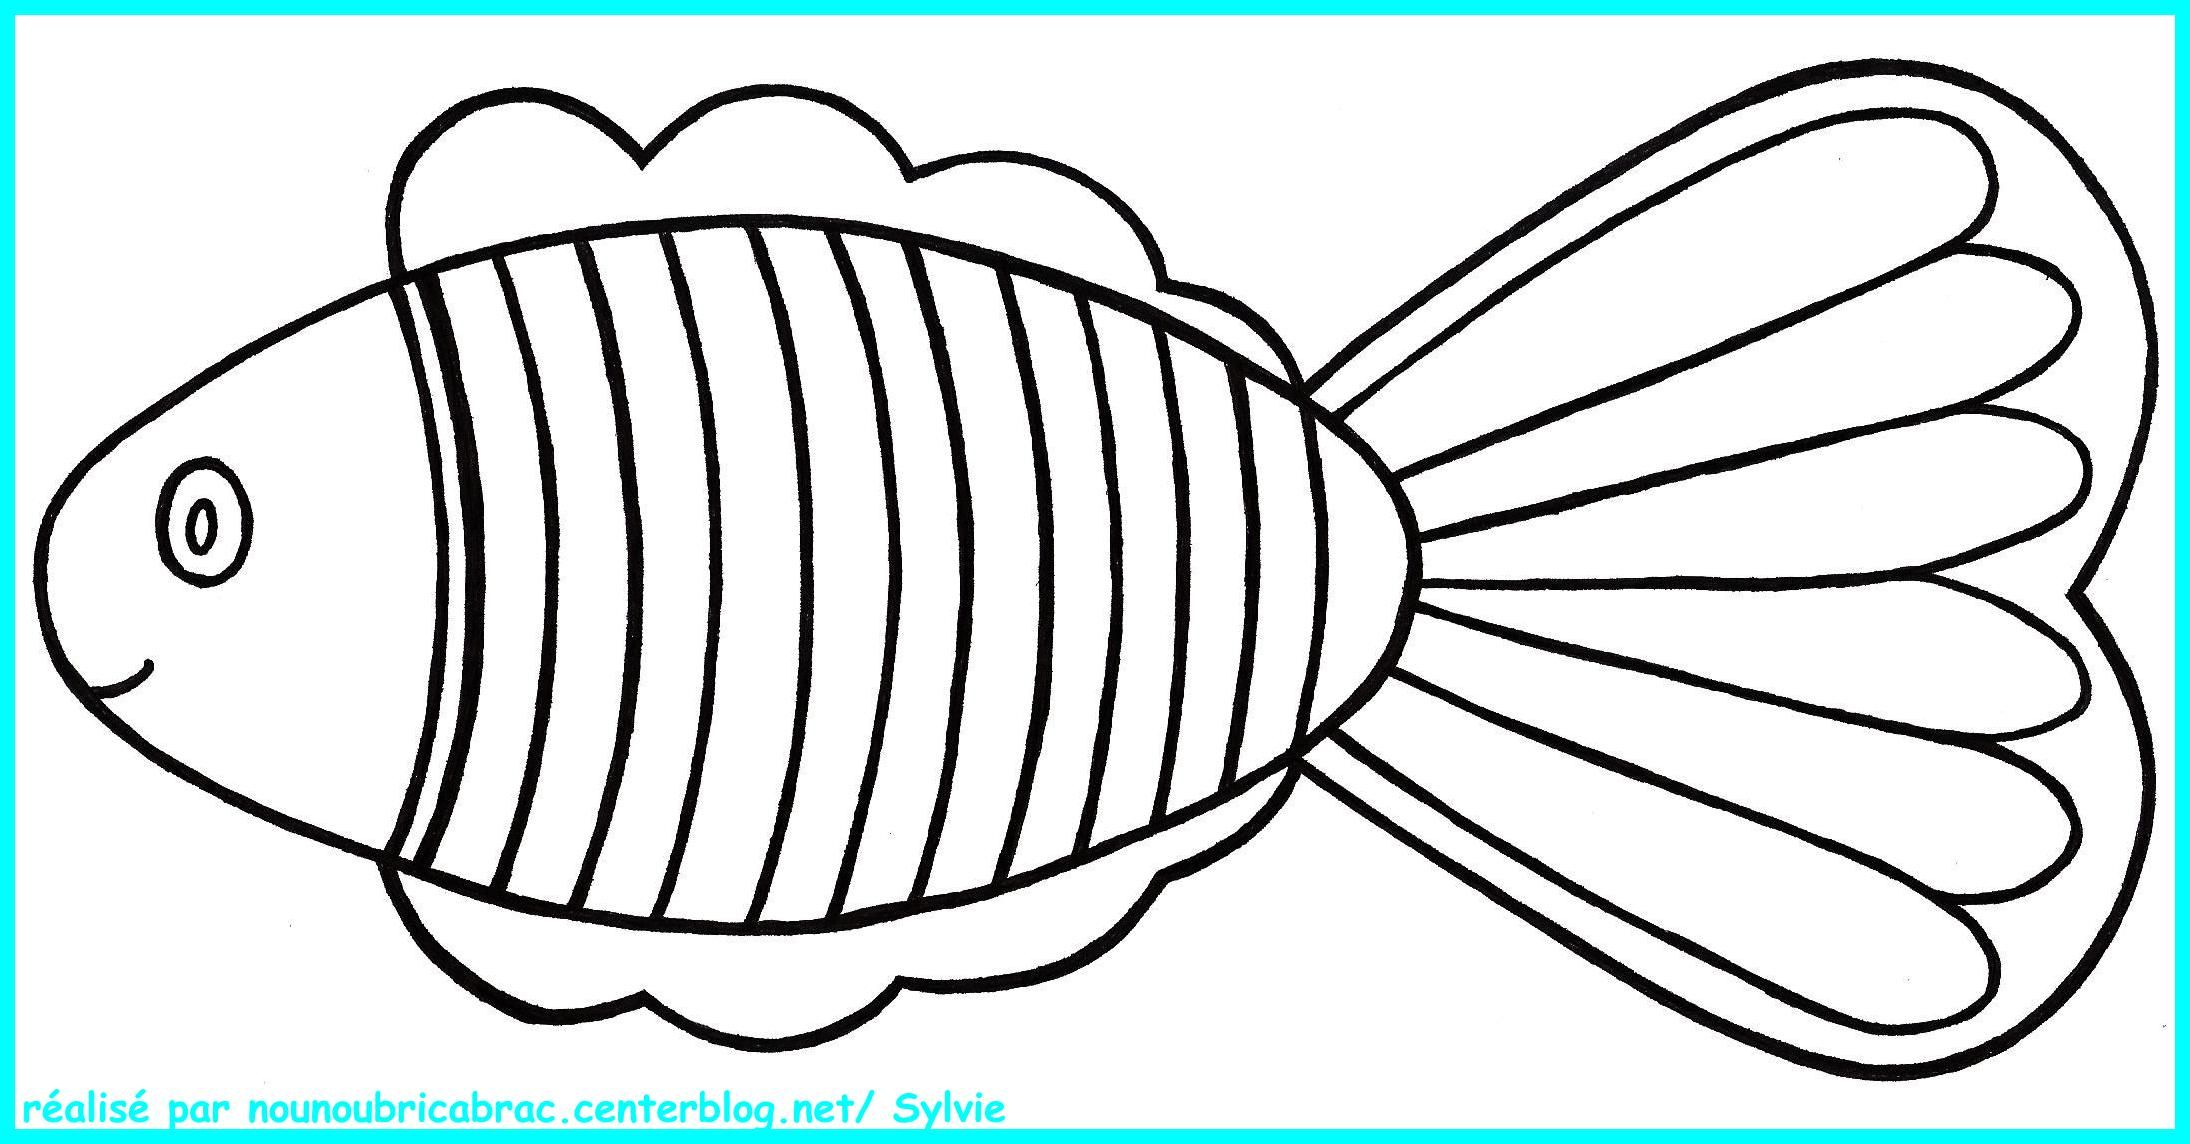 Poisson a colorier - Dessin poisson ...